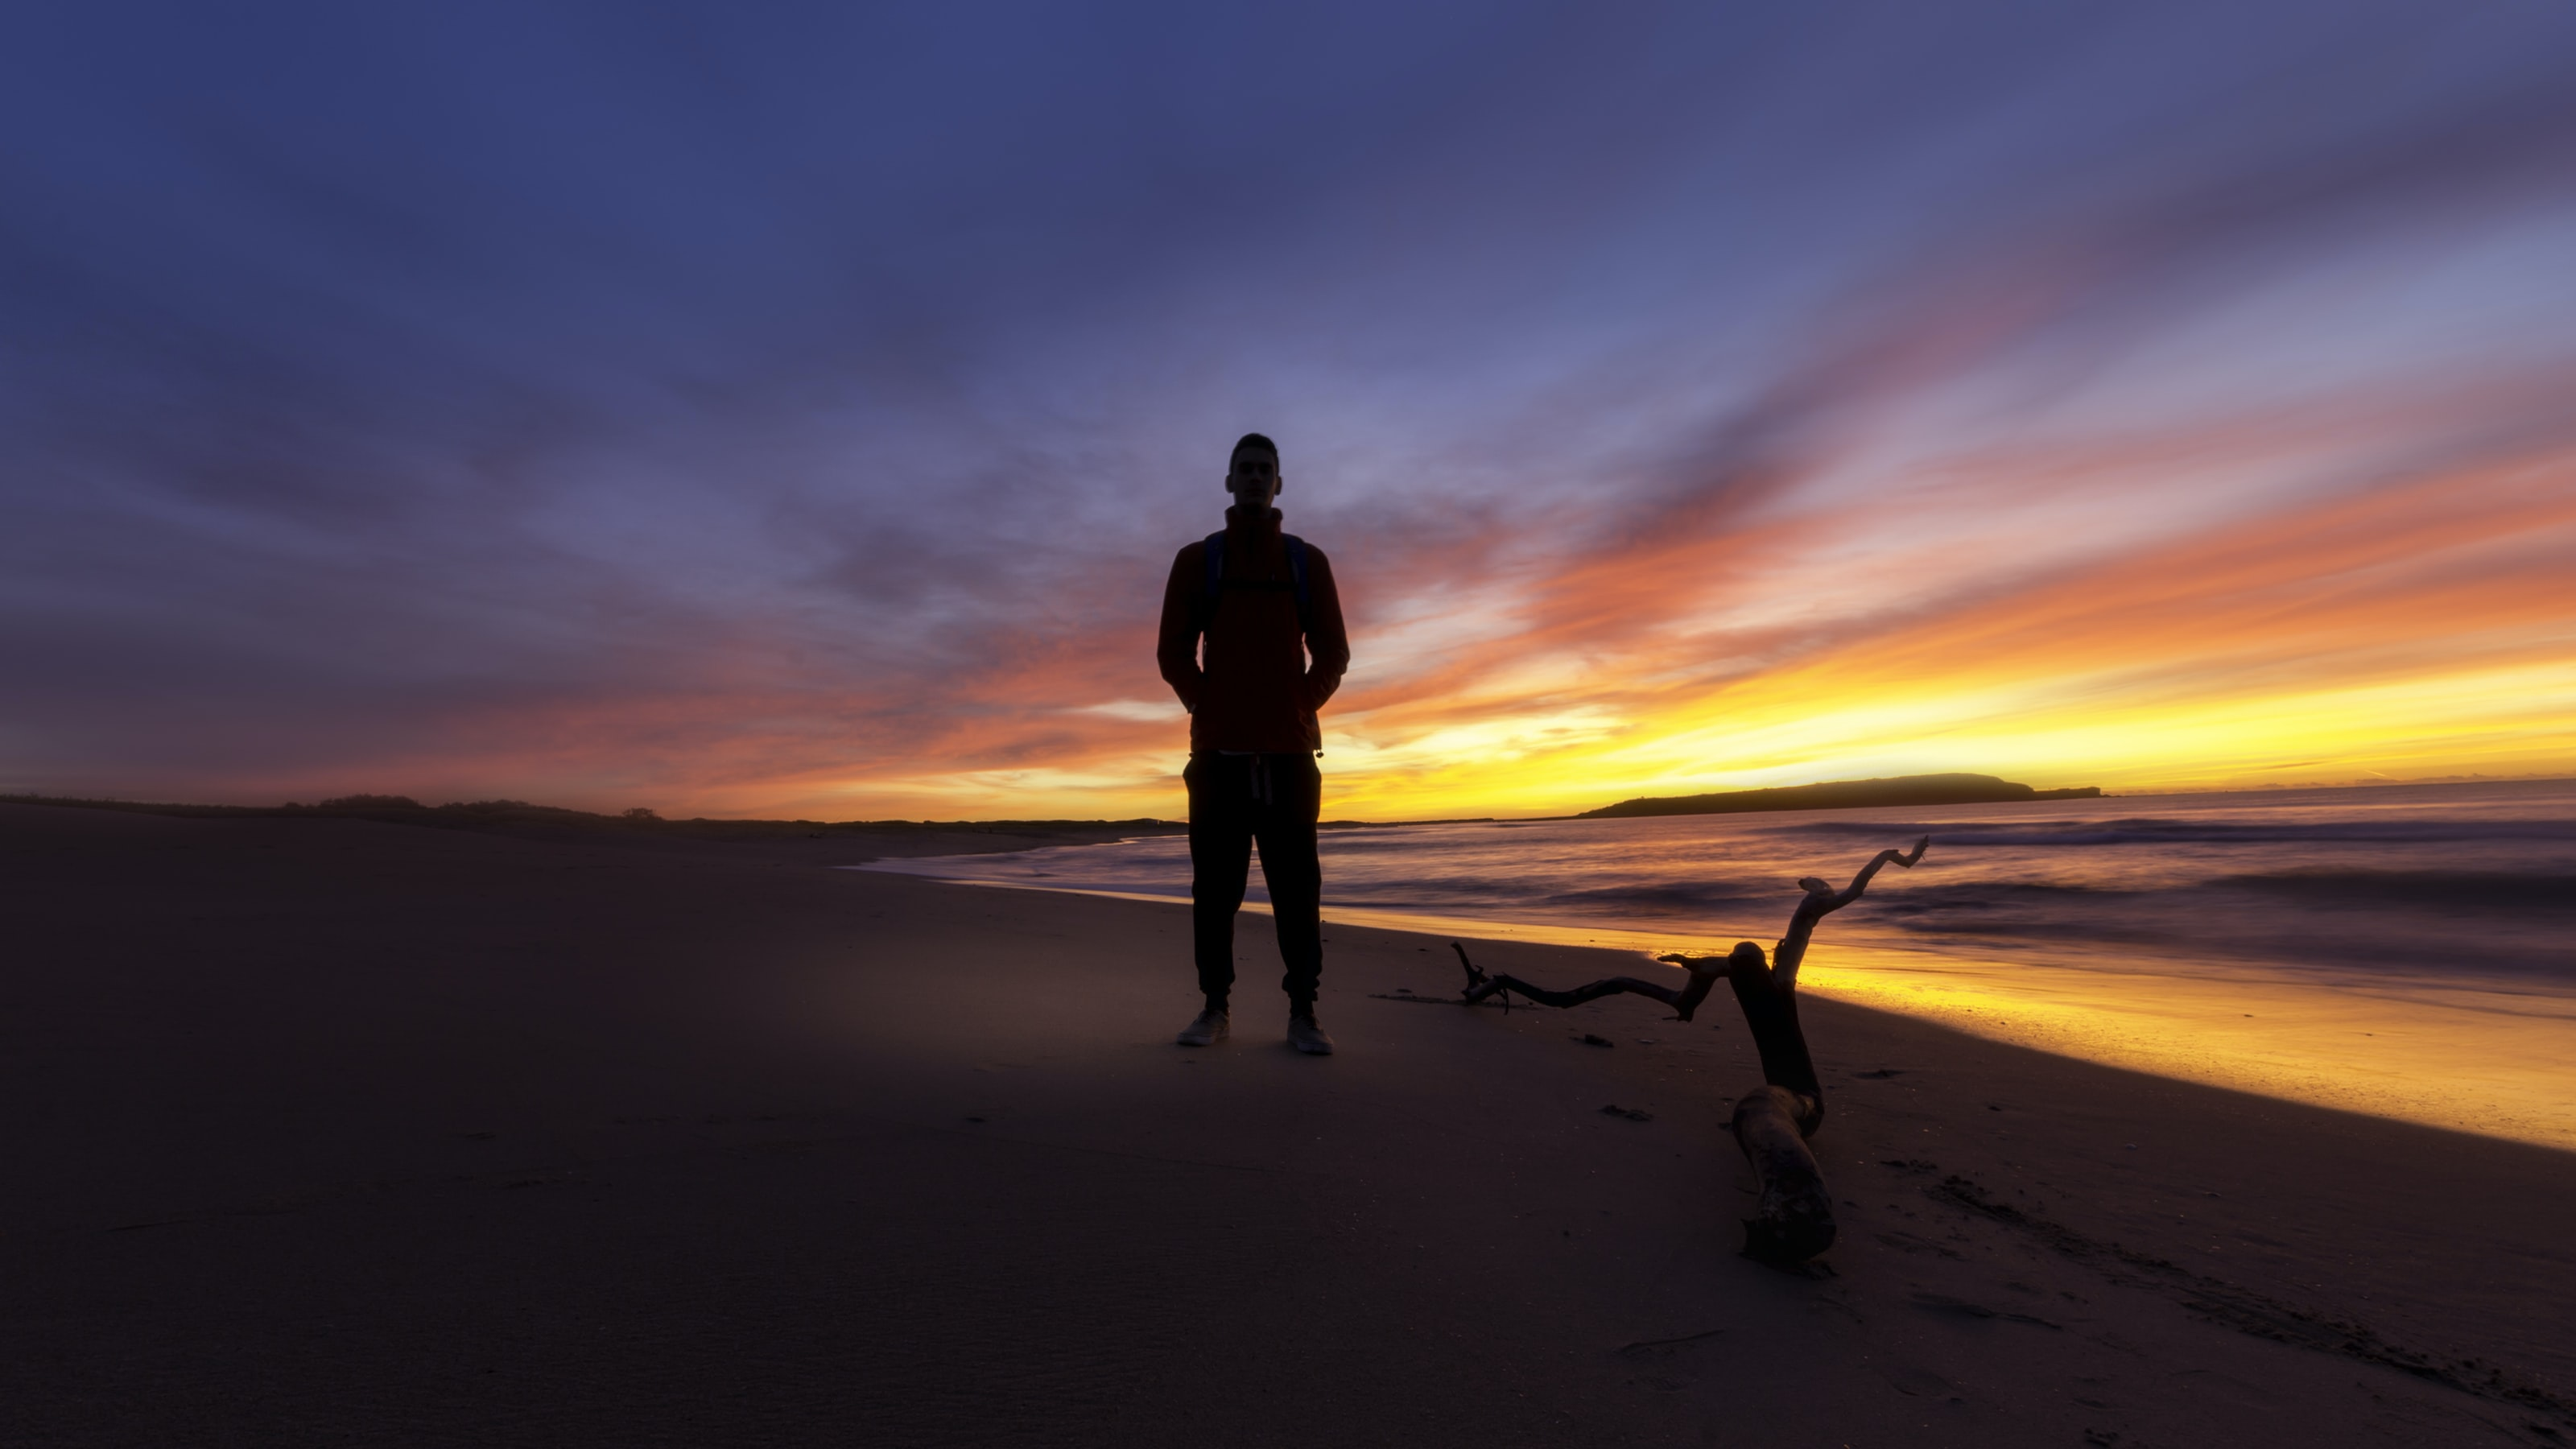 A male silhouette on a Sydney beach during the late evening with a strong sun in the background